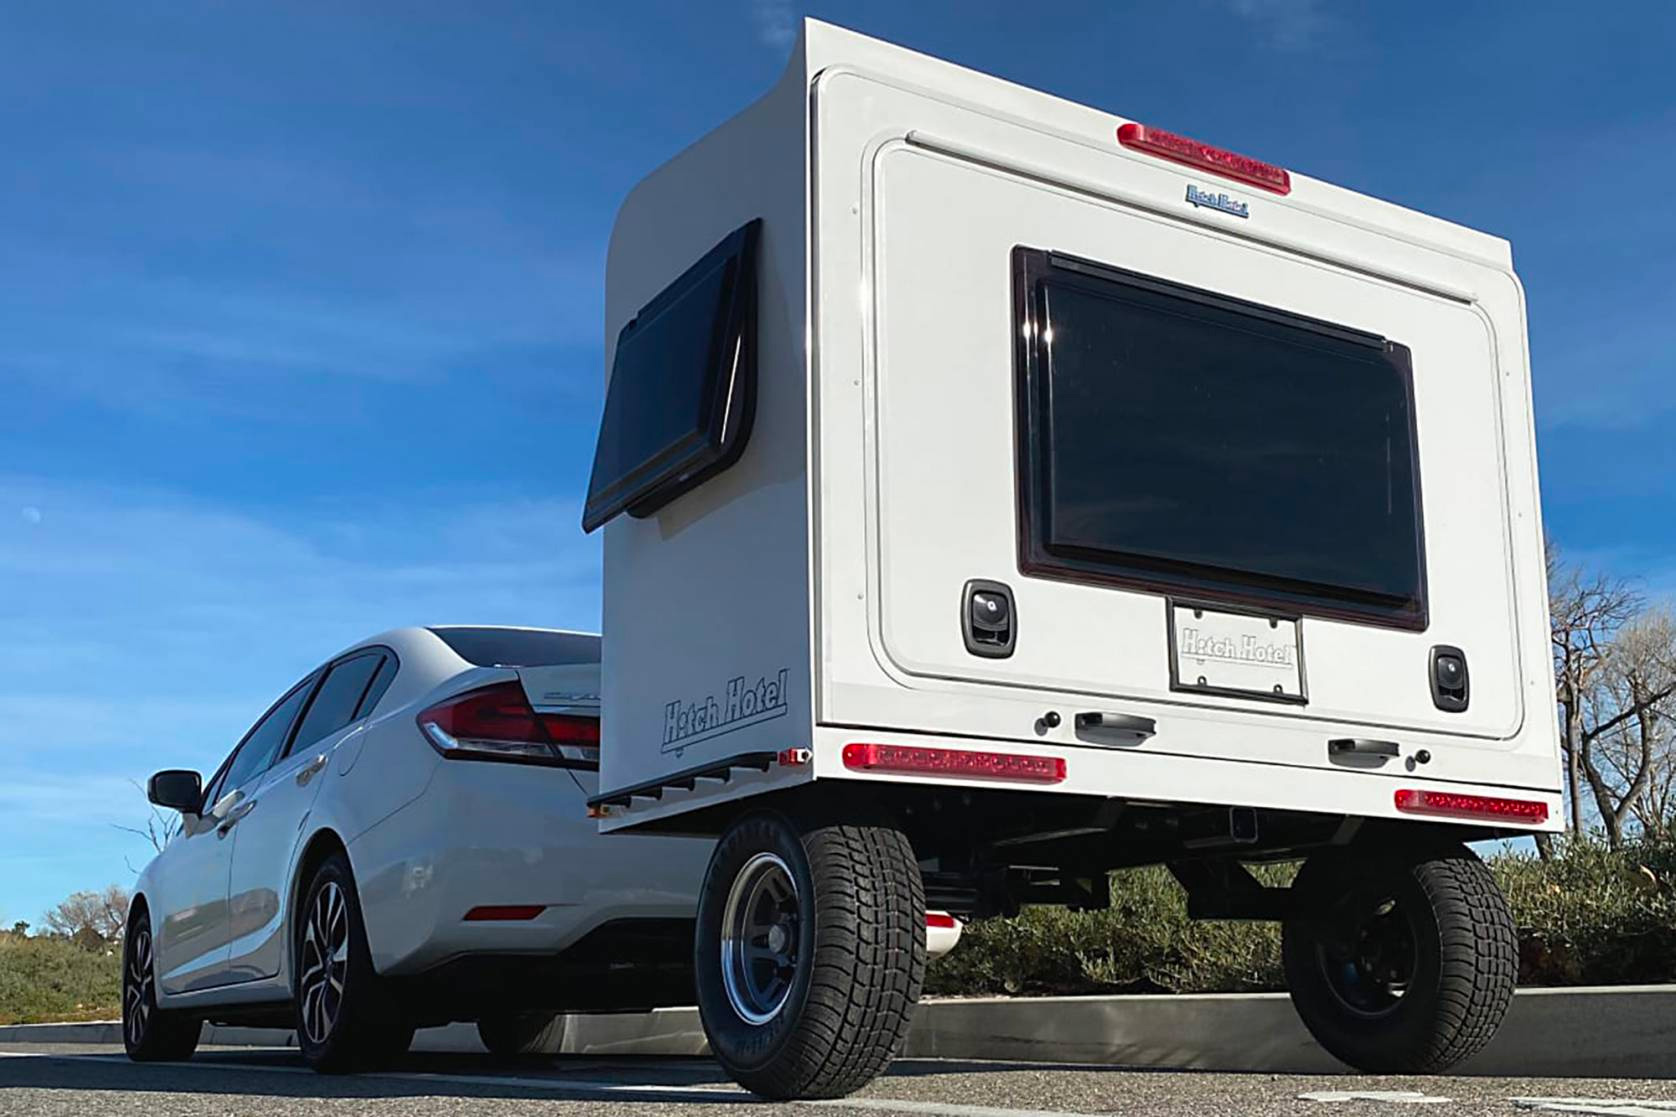 The Hitch Hotel Traveler is a Super Compact Camper at werd.com